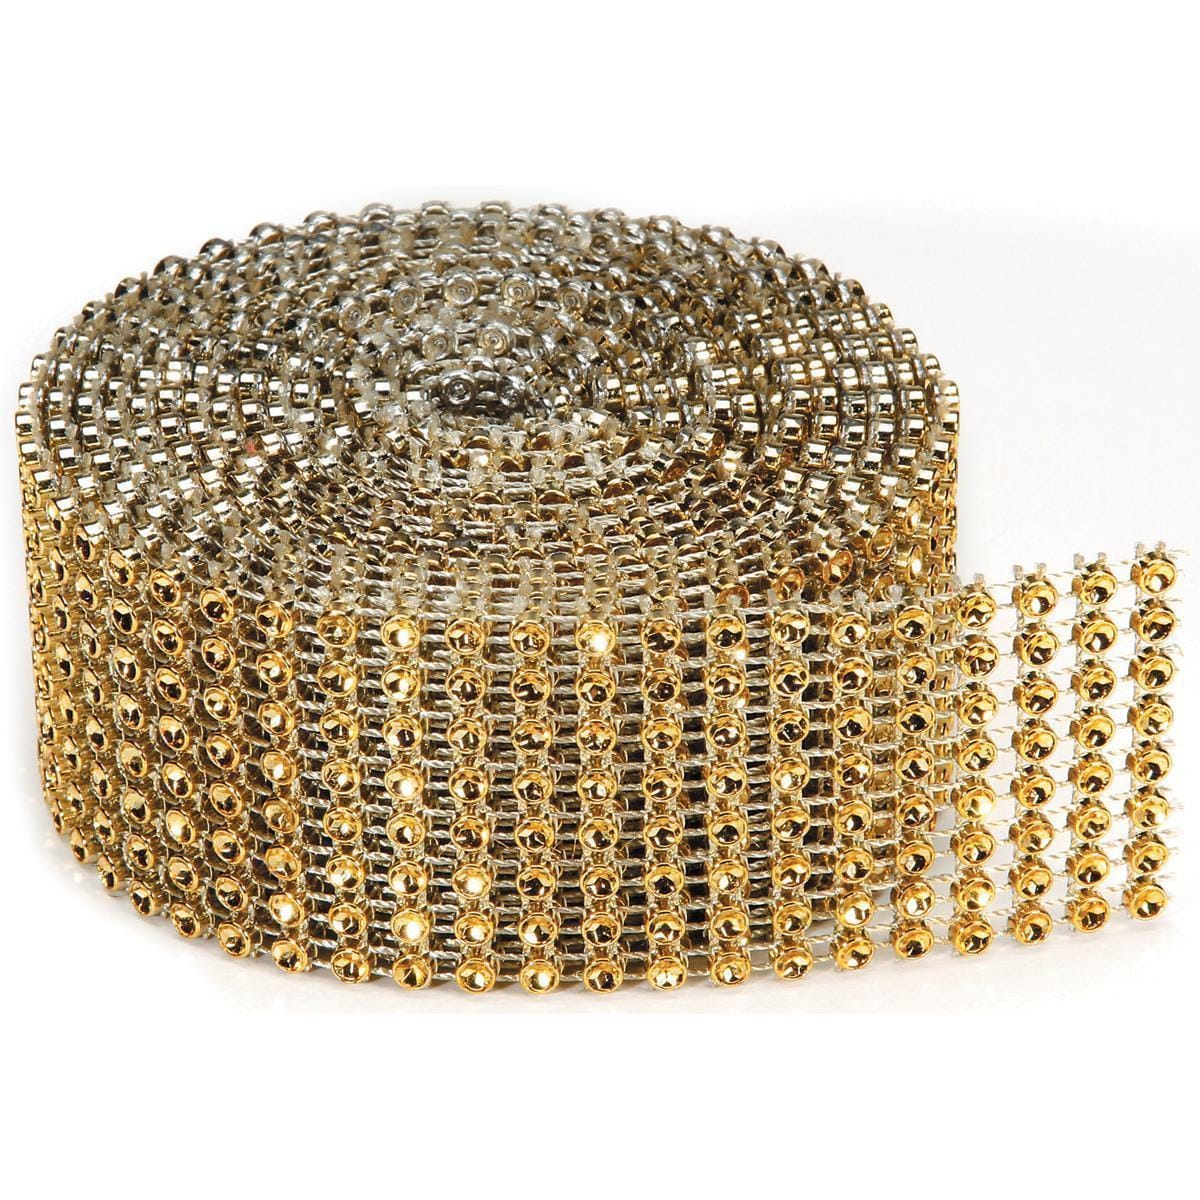 DARICE Bling On A Roll 3mm X 2yds - 8 Row, Gold